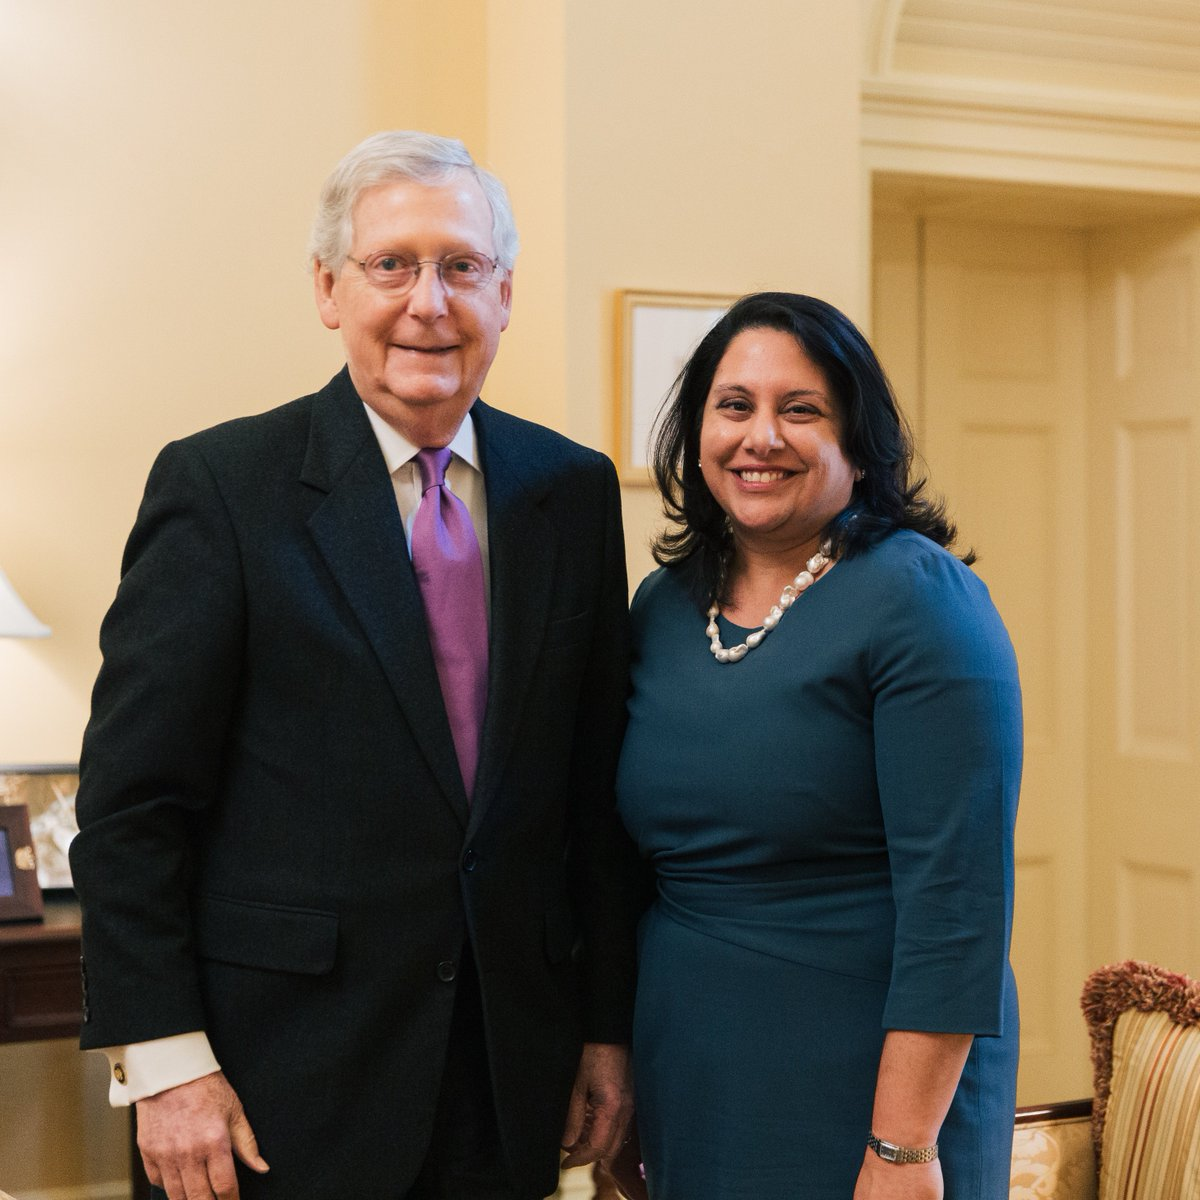 I'm glad @POTUS has nominated Neomi Rao to the DC Circuit Court Of Appeals. She has the top rating from the American Bar Association, and I'm confident she will be a fair and impartial judge on this important court.